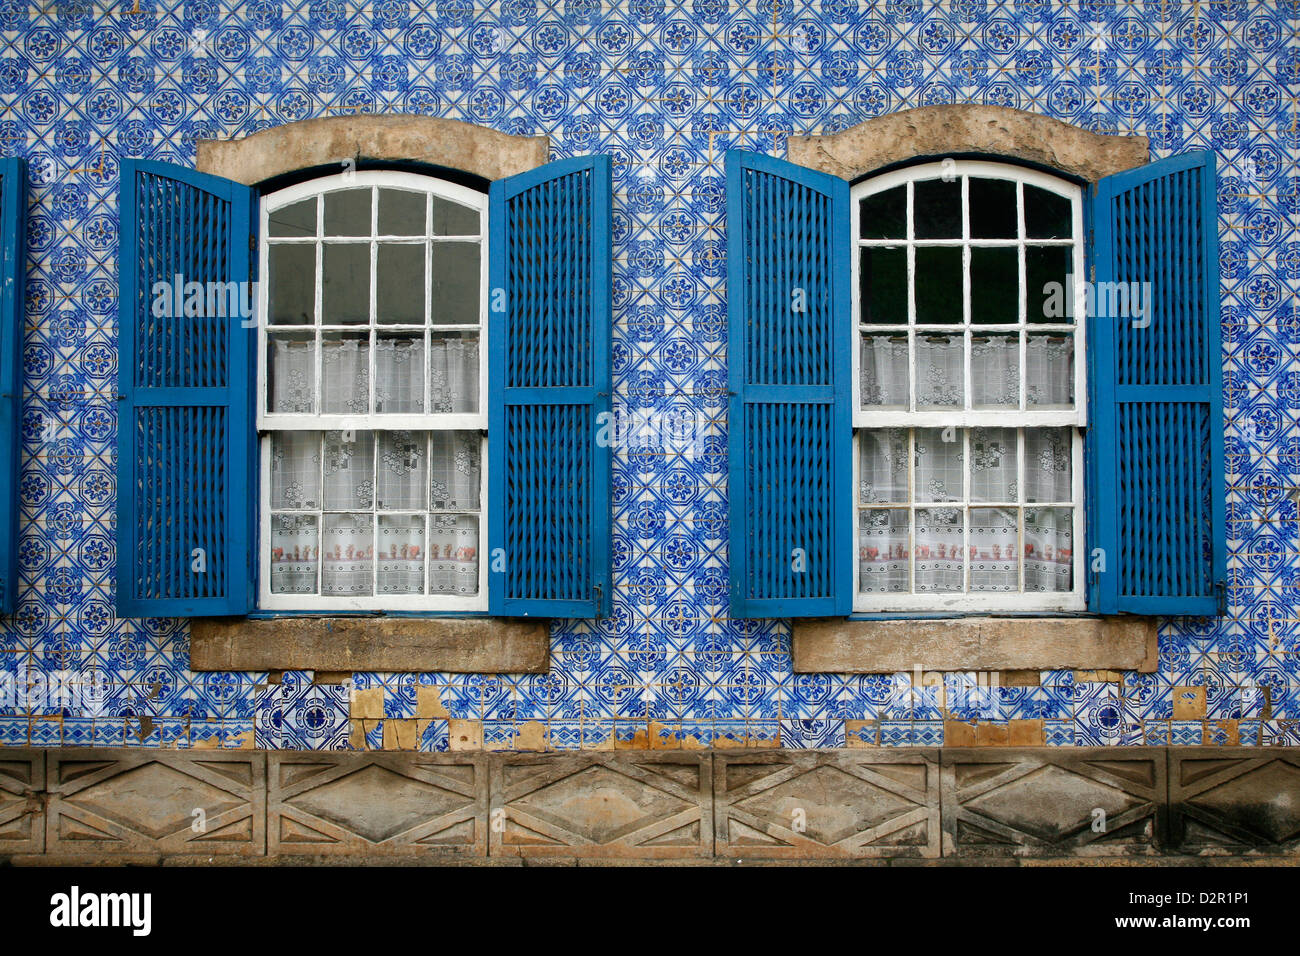 House covered with azulejos (tiles), Ouro Preto, UNESCO World Heritage Site, Minas Gerais, Brazil, South America - Stock Image